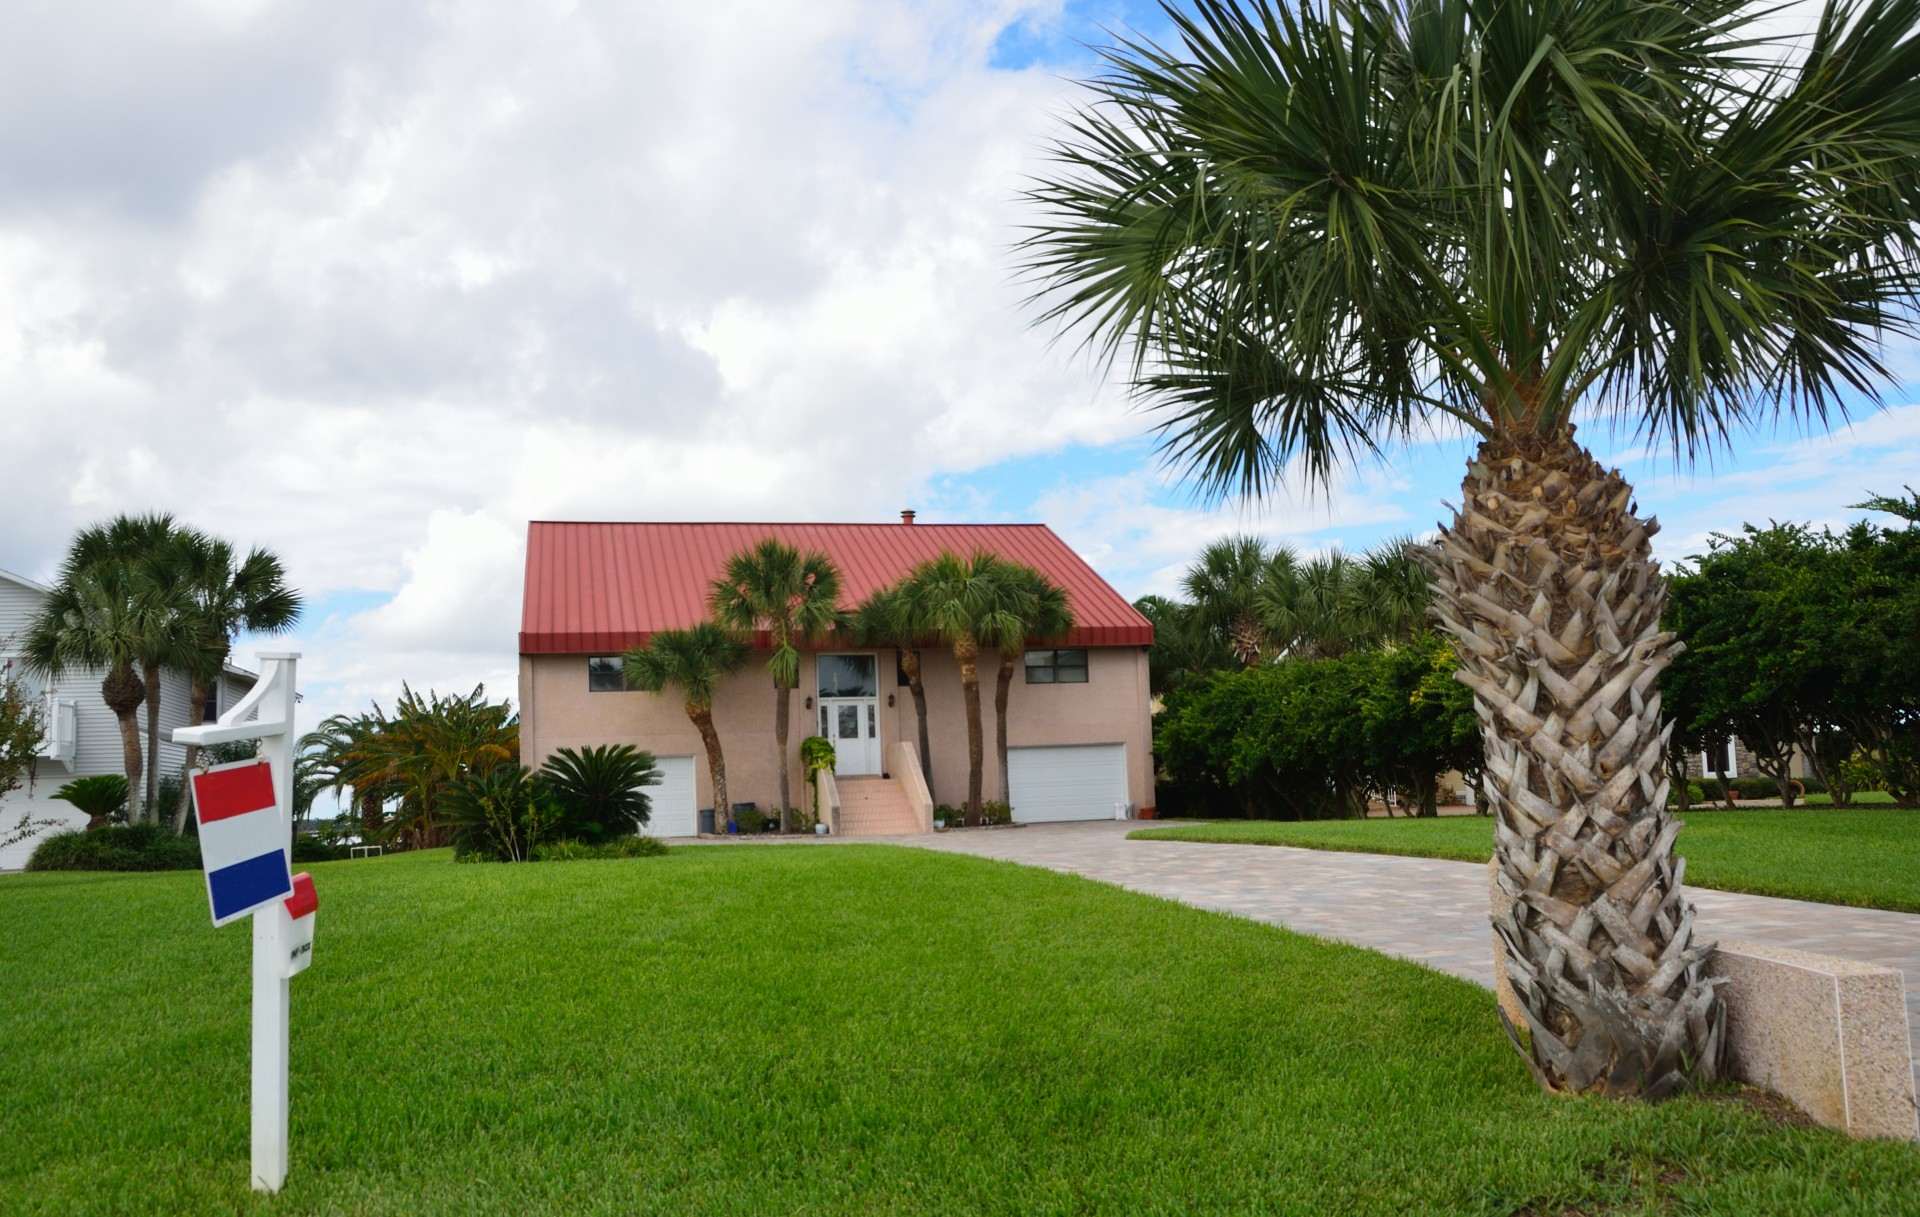 florida-home-for-sale-1403780724hdp-1